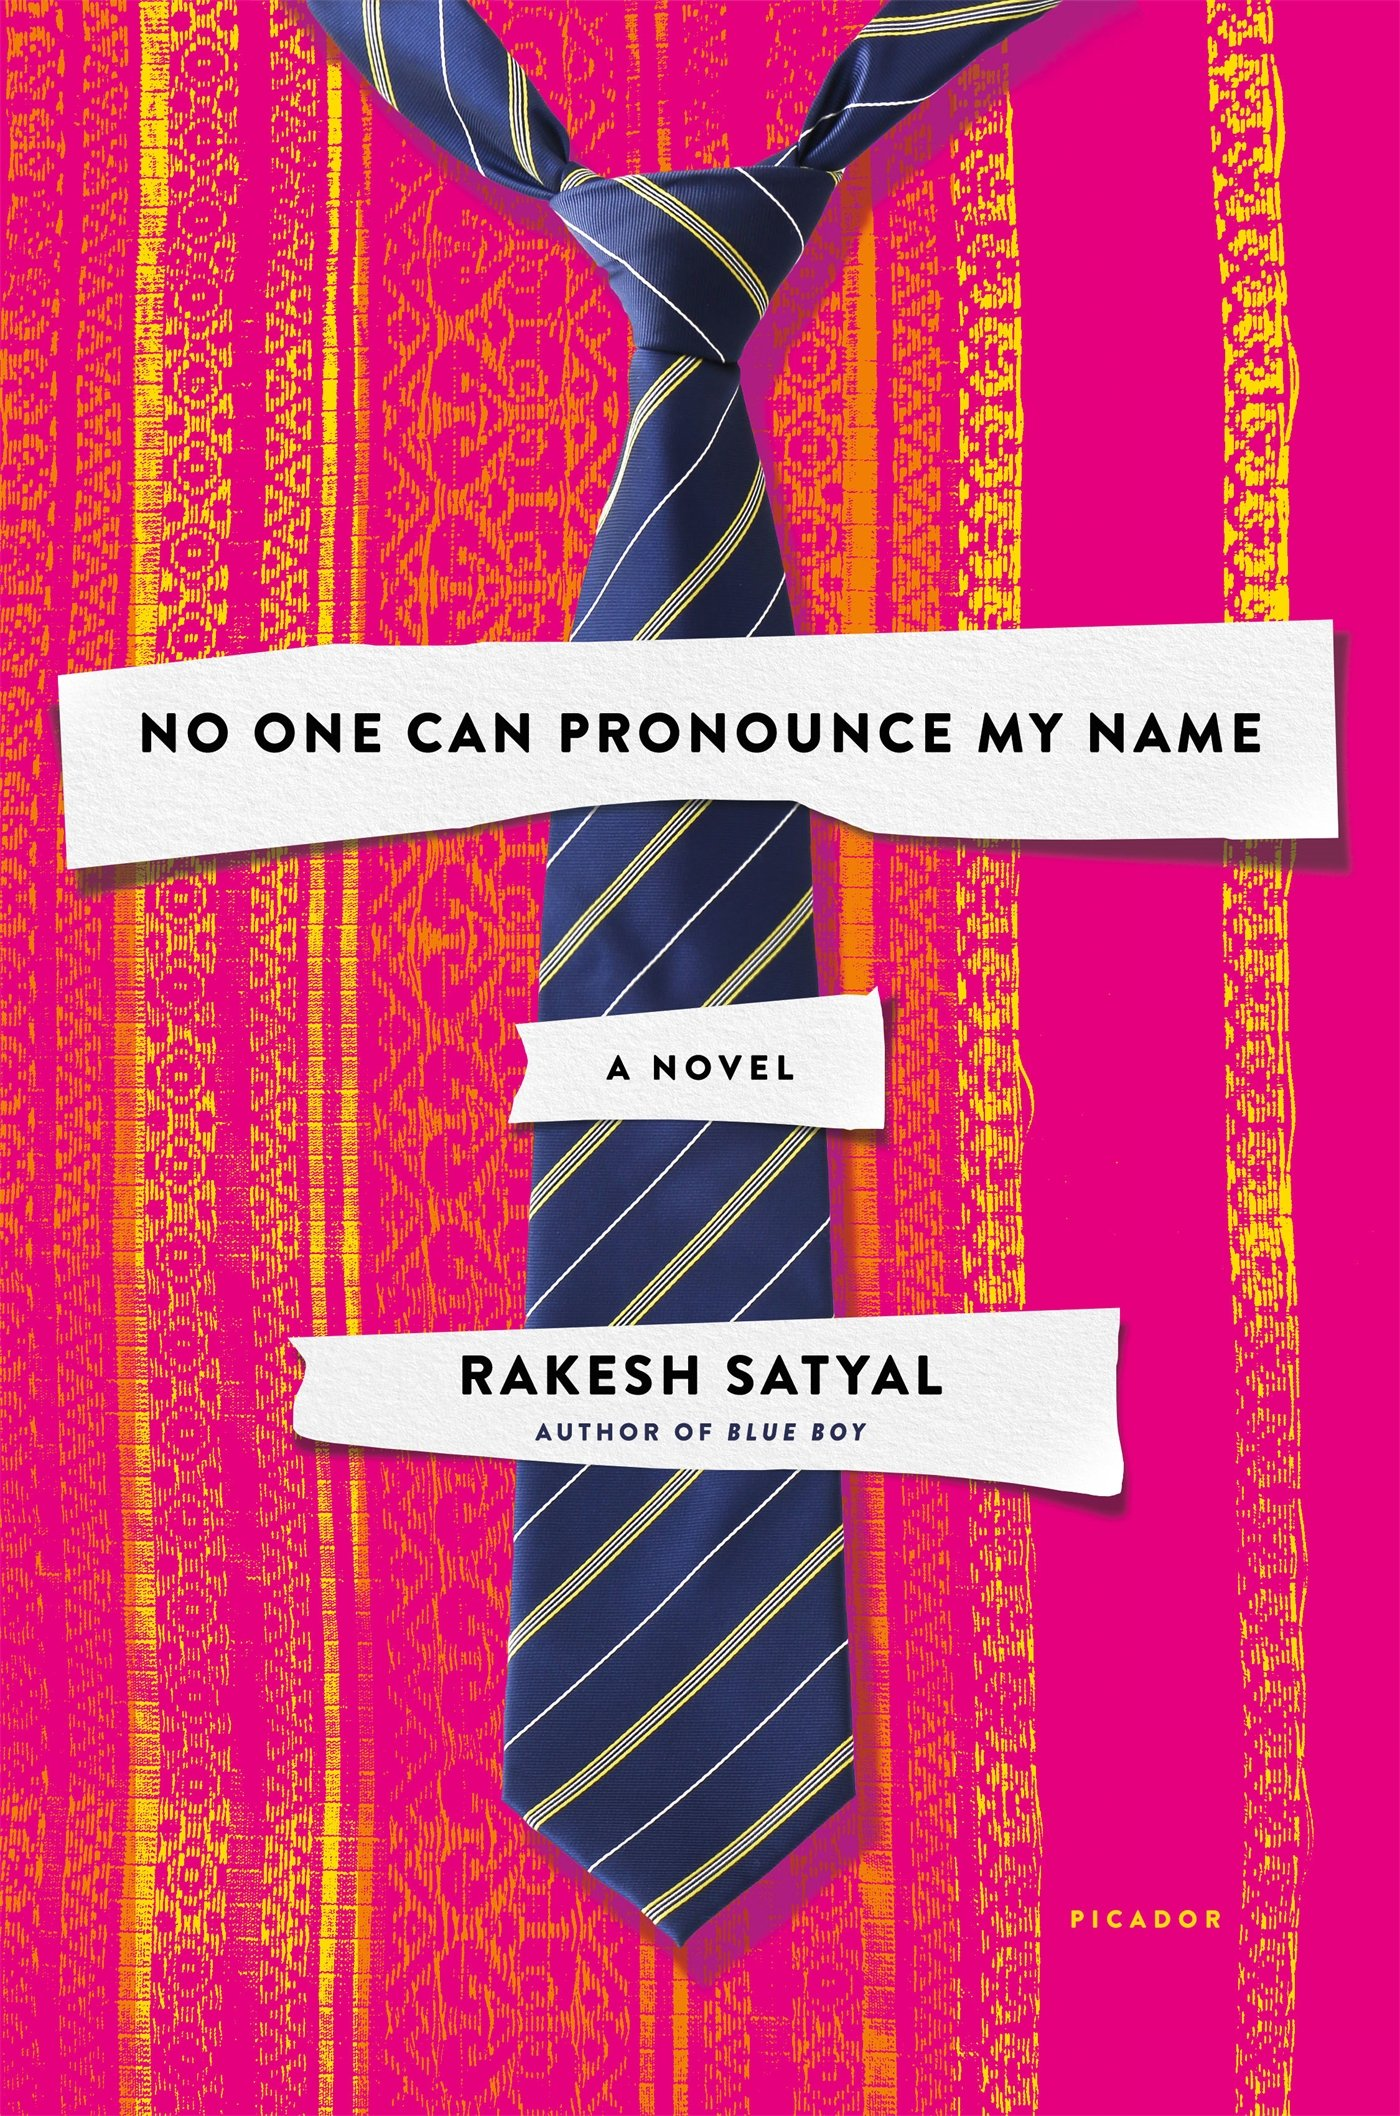 'No One Can Pronounce My Name: A Novel' by Rakesh Satyal